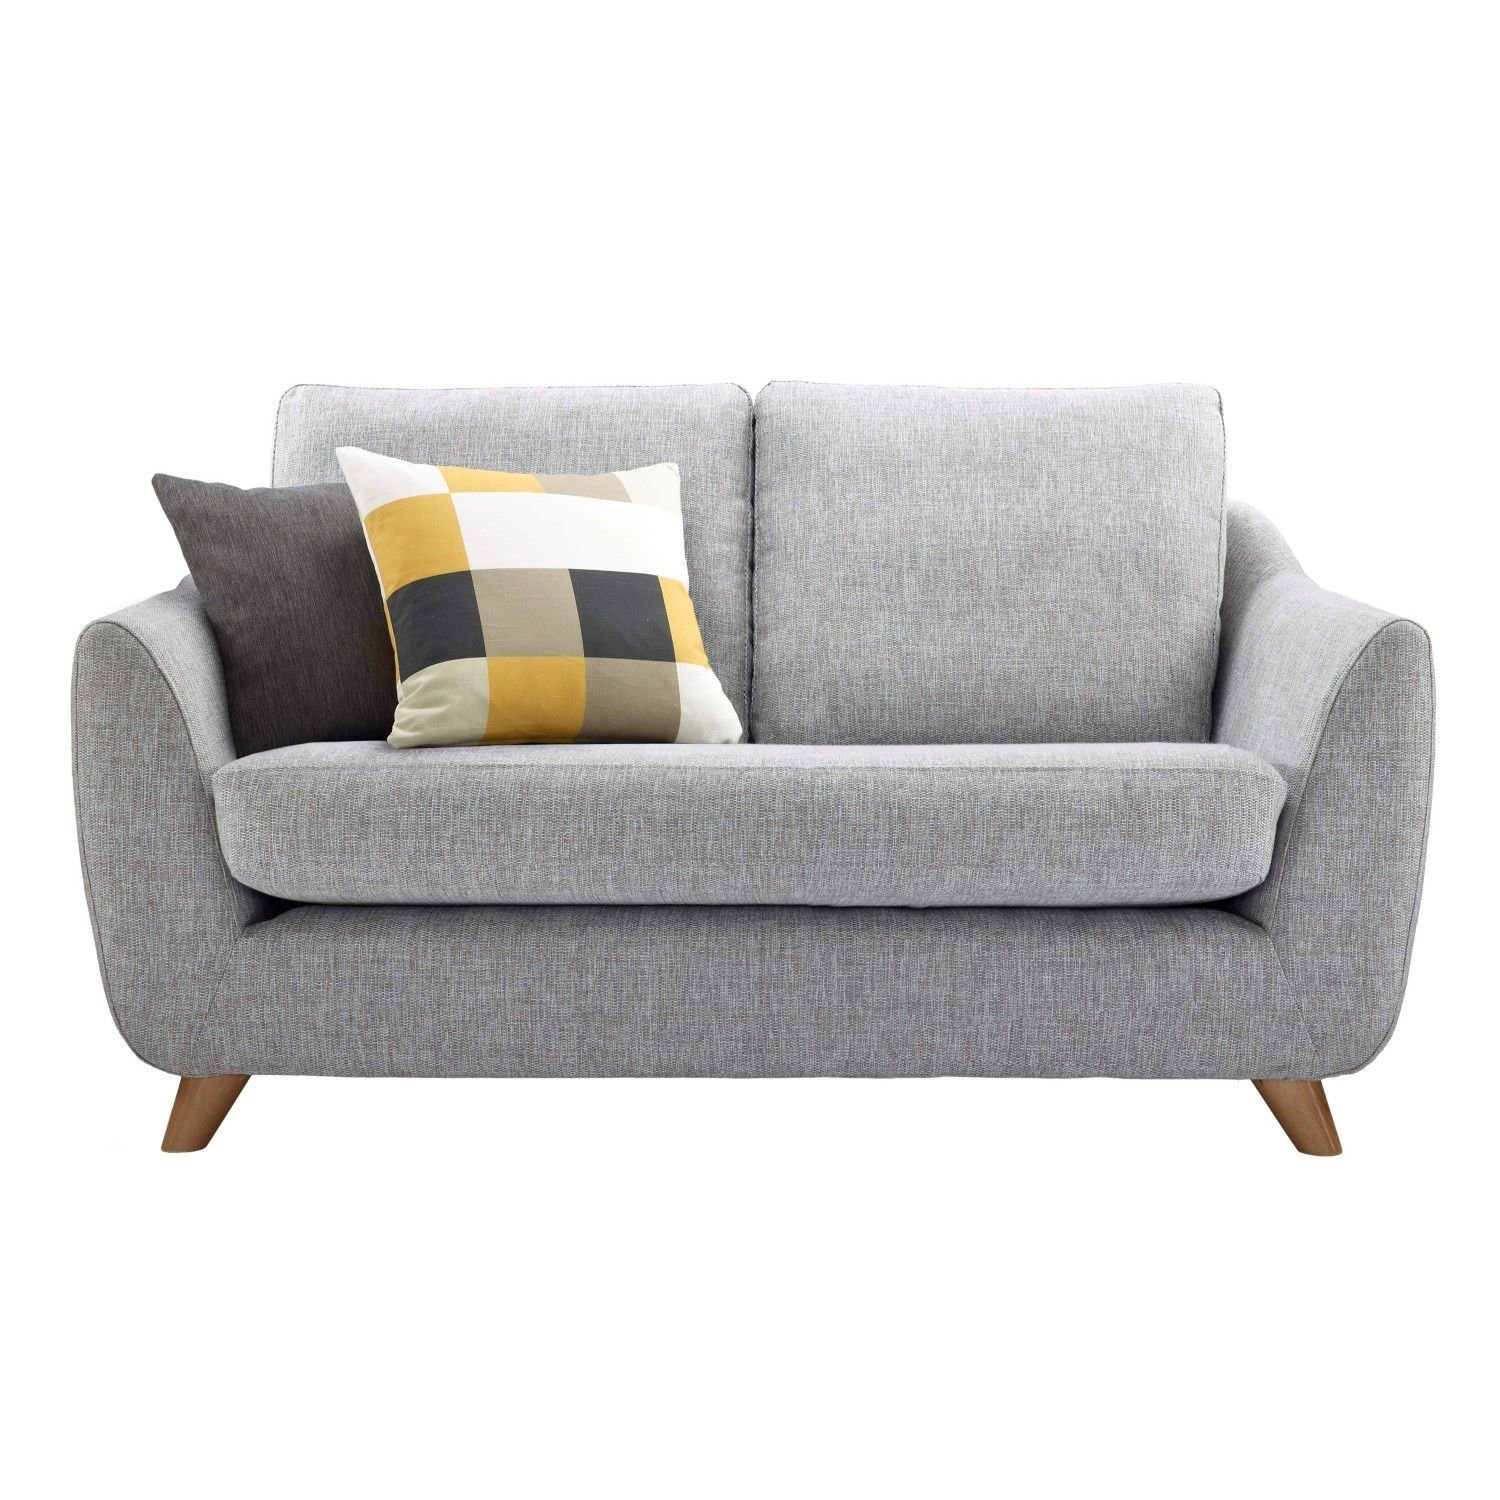 Best Loveseats For Small Spaces Cheap Small Sofa Decoration With Pictures